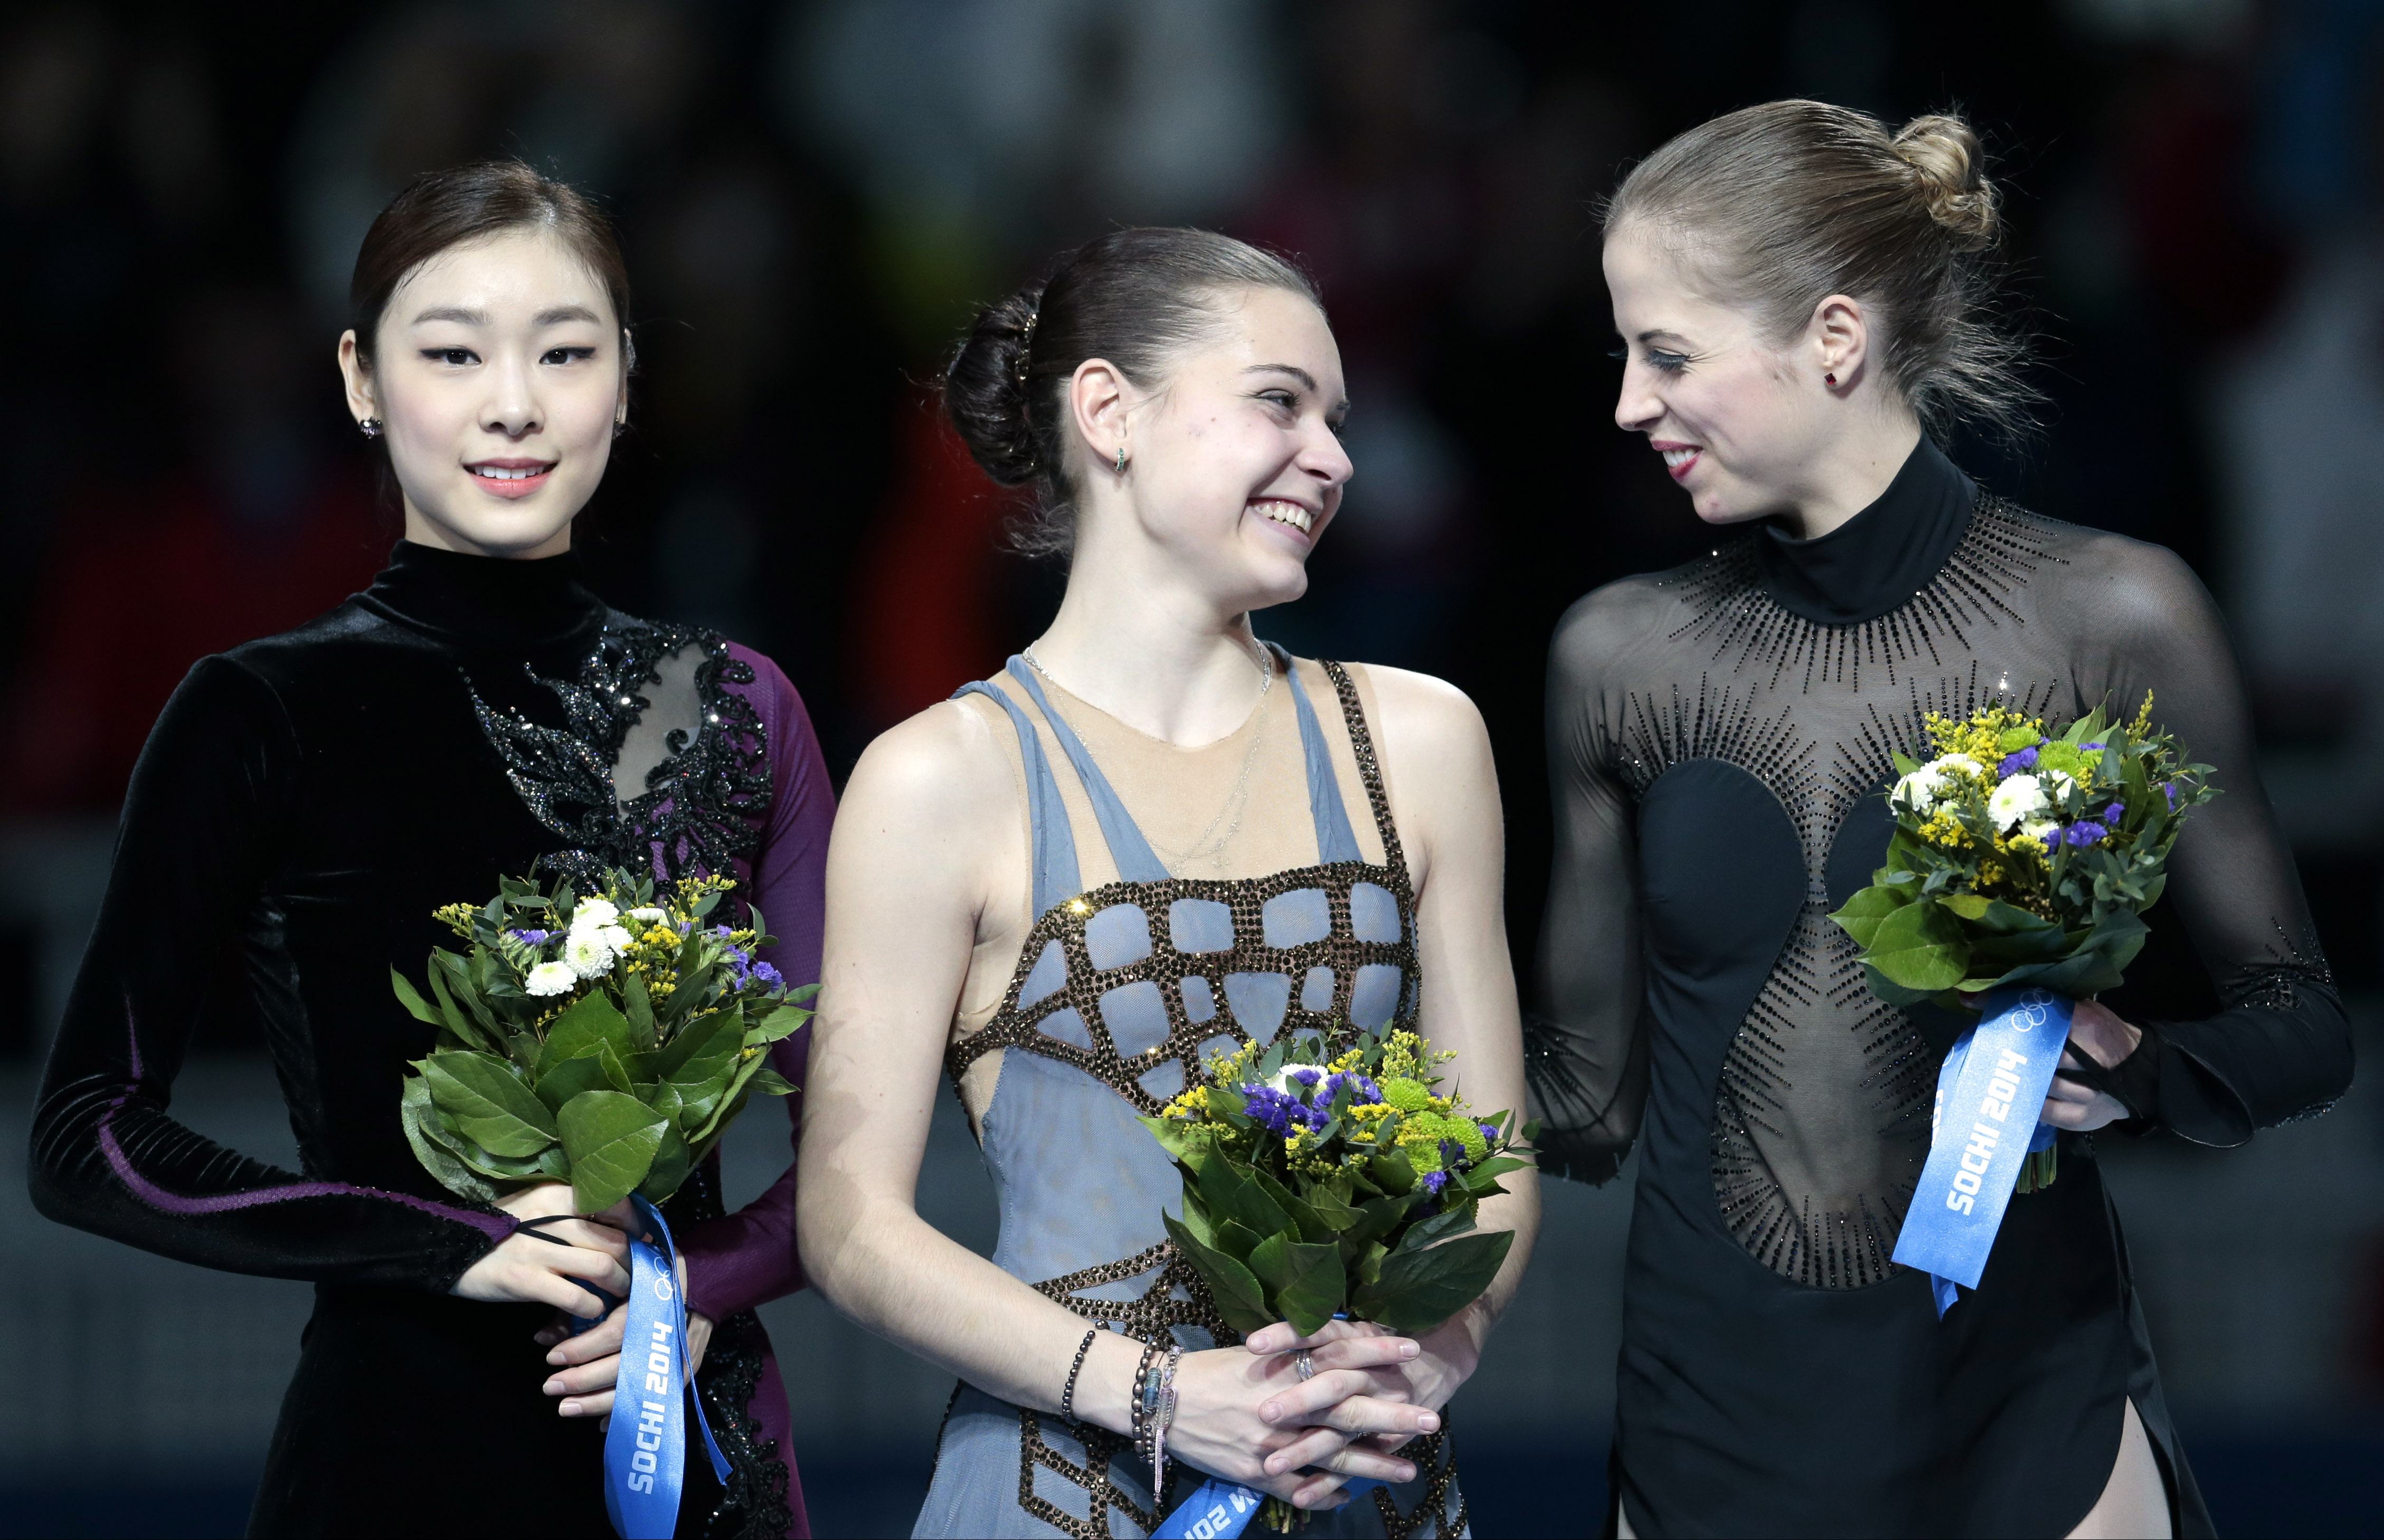 Adelina Sotnikova of Russia, centre, Kim Yuna of South Korea, left, and Carolina Kostner of Italy stand on the podium during the flower ceremony for the women's free skate figure skating final at the Iceberg Skating Palace during the 2014 Winter Olympics, Thursday, Feb. 20, 2014, in Sochi, Russia. Sotnikova placed first, followed by Kim and Kostner. (AP Photo/Ivan Sekretarev)